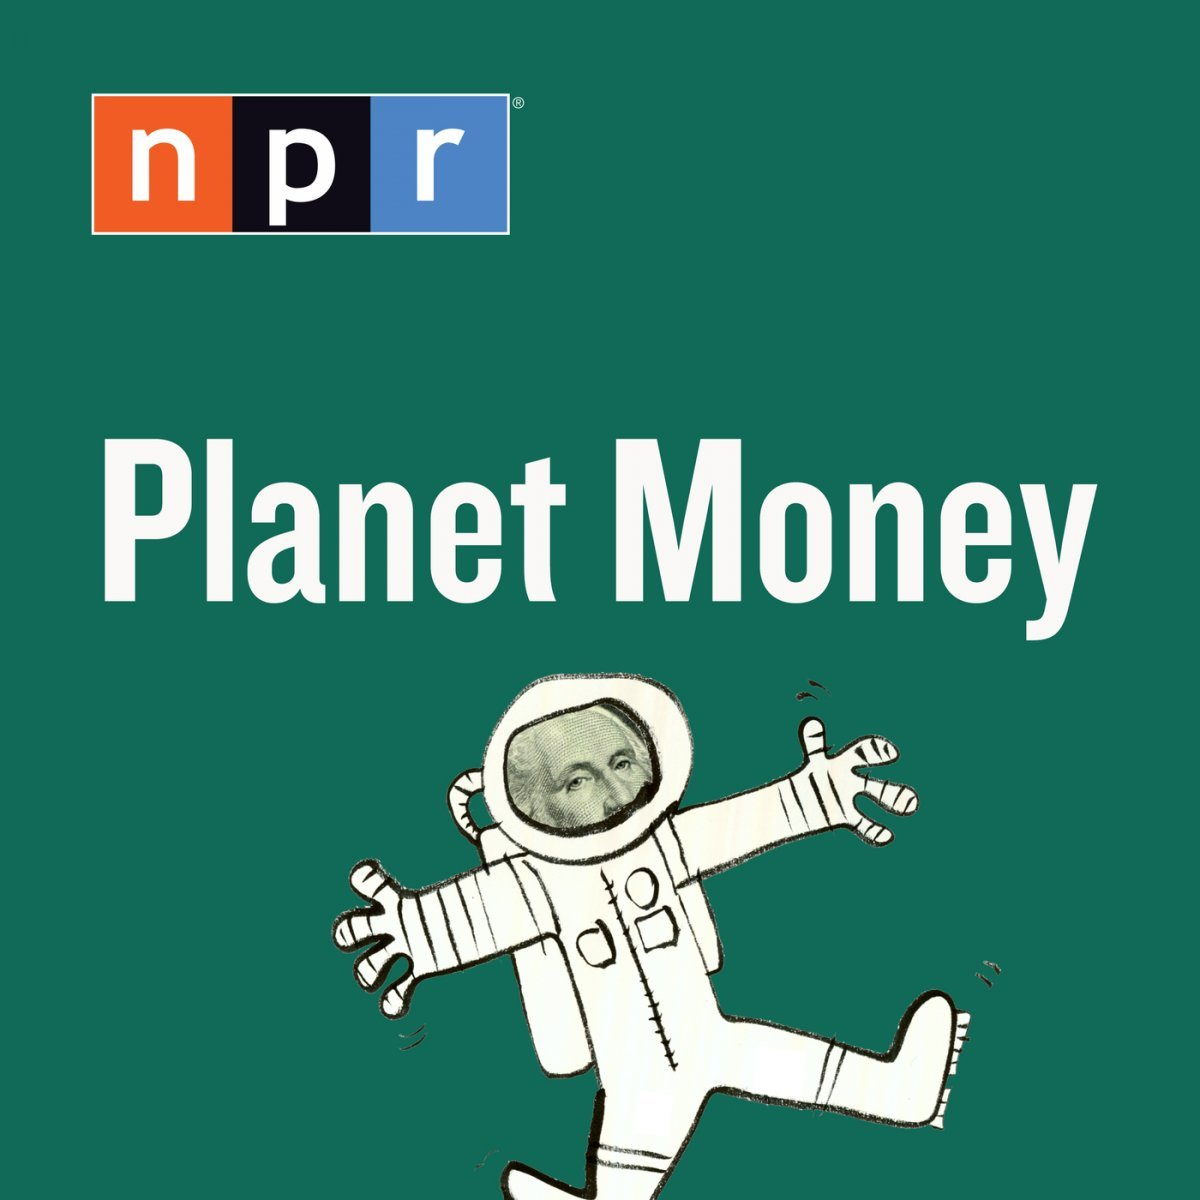 'Planet Money' distills complex business and economics topics into simple stories.